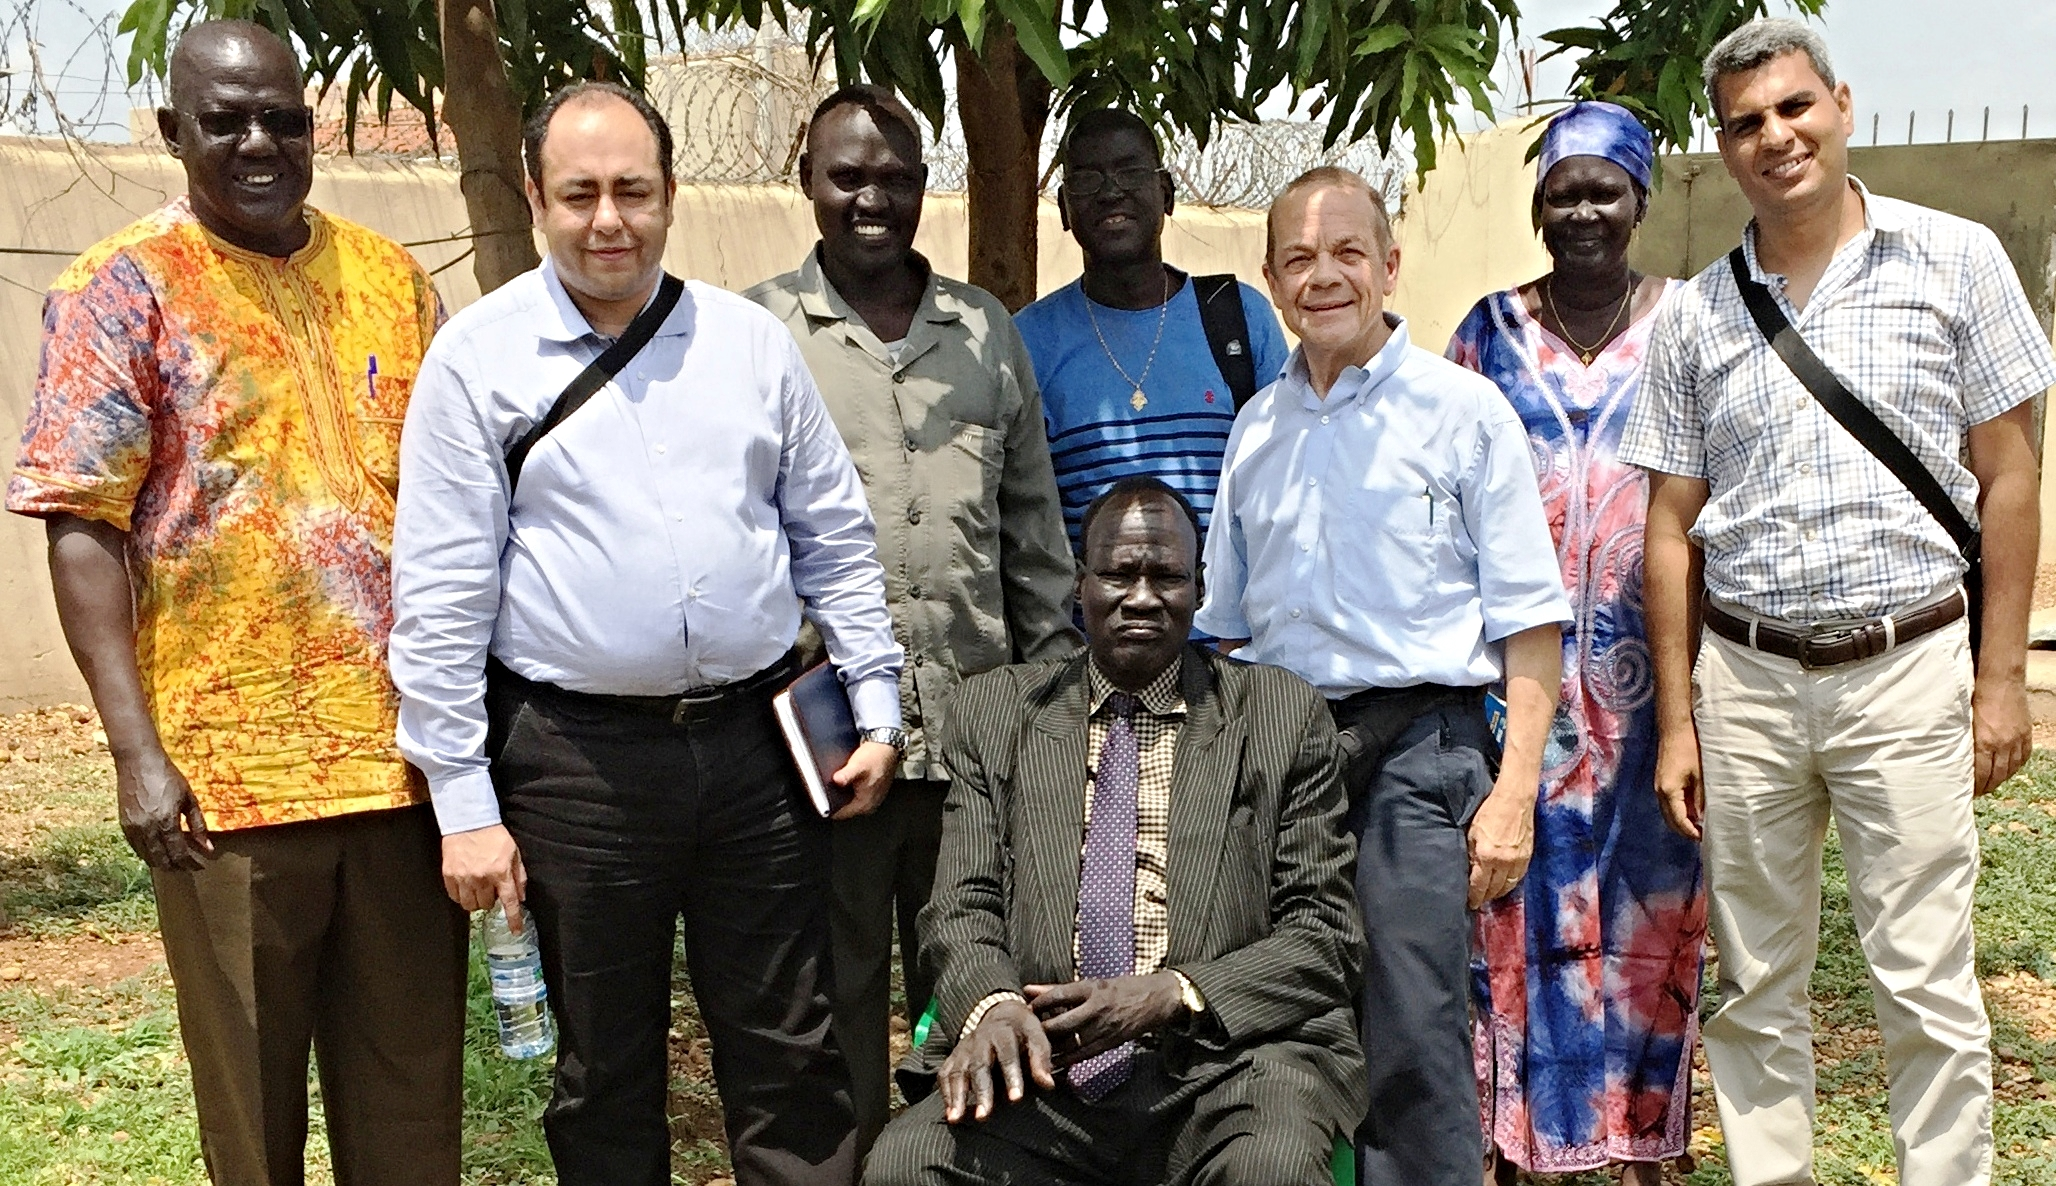 The photo of the leadership of the South Sudan Presbyterian Evangelical Church with us includes, from left to right, Elder Daniel, Treasurer; (Hani Jack); Rev. Philip Obang, General Secretary; Rev. James Par Tap, Moderator, seated; (David Paduil behind); (Jeff); Madam Achol, Head of the Women's Desk; (Hany Bareh).